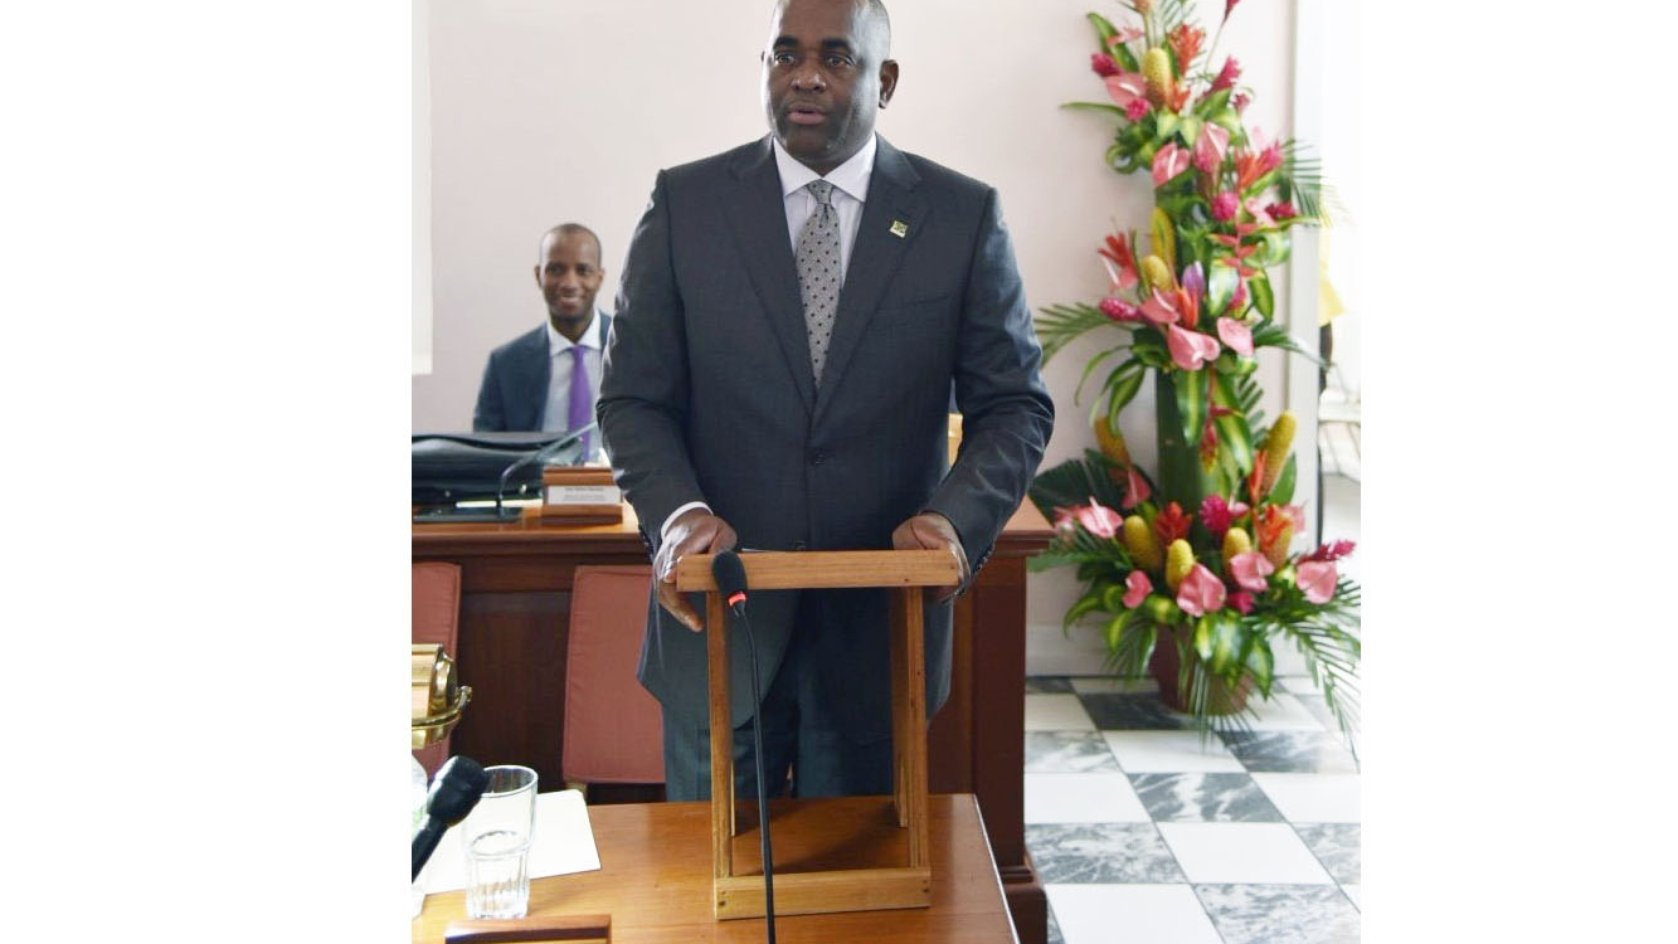 Prime Minister Skerrit delivers budget address to nation and parliament